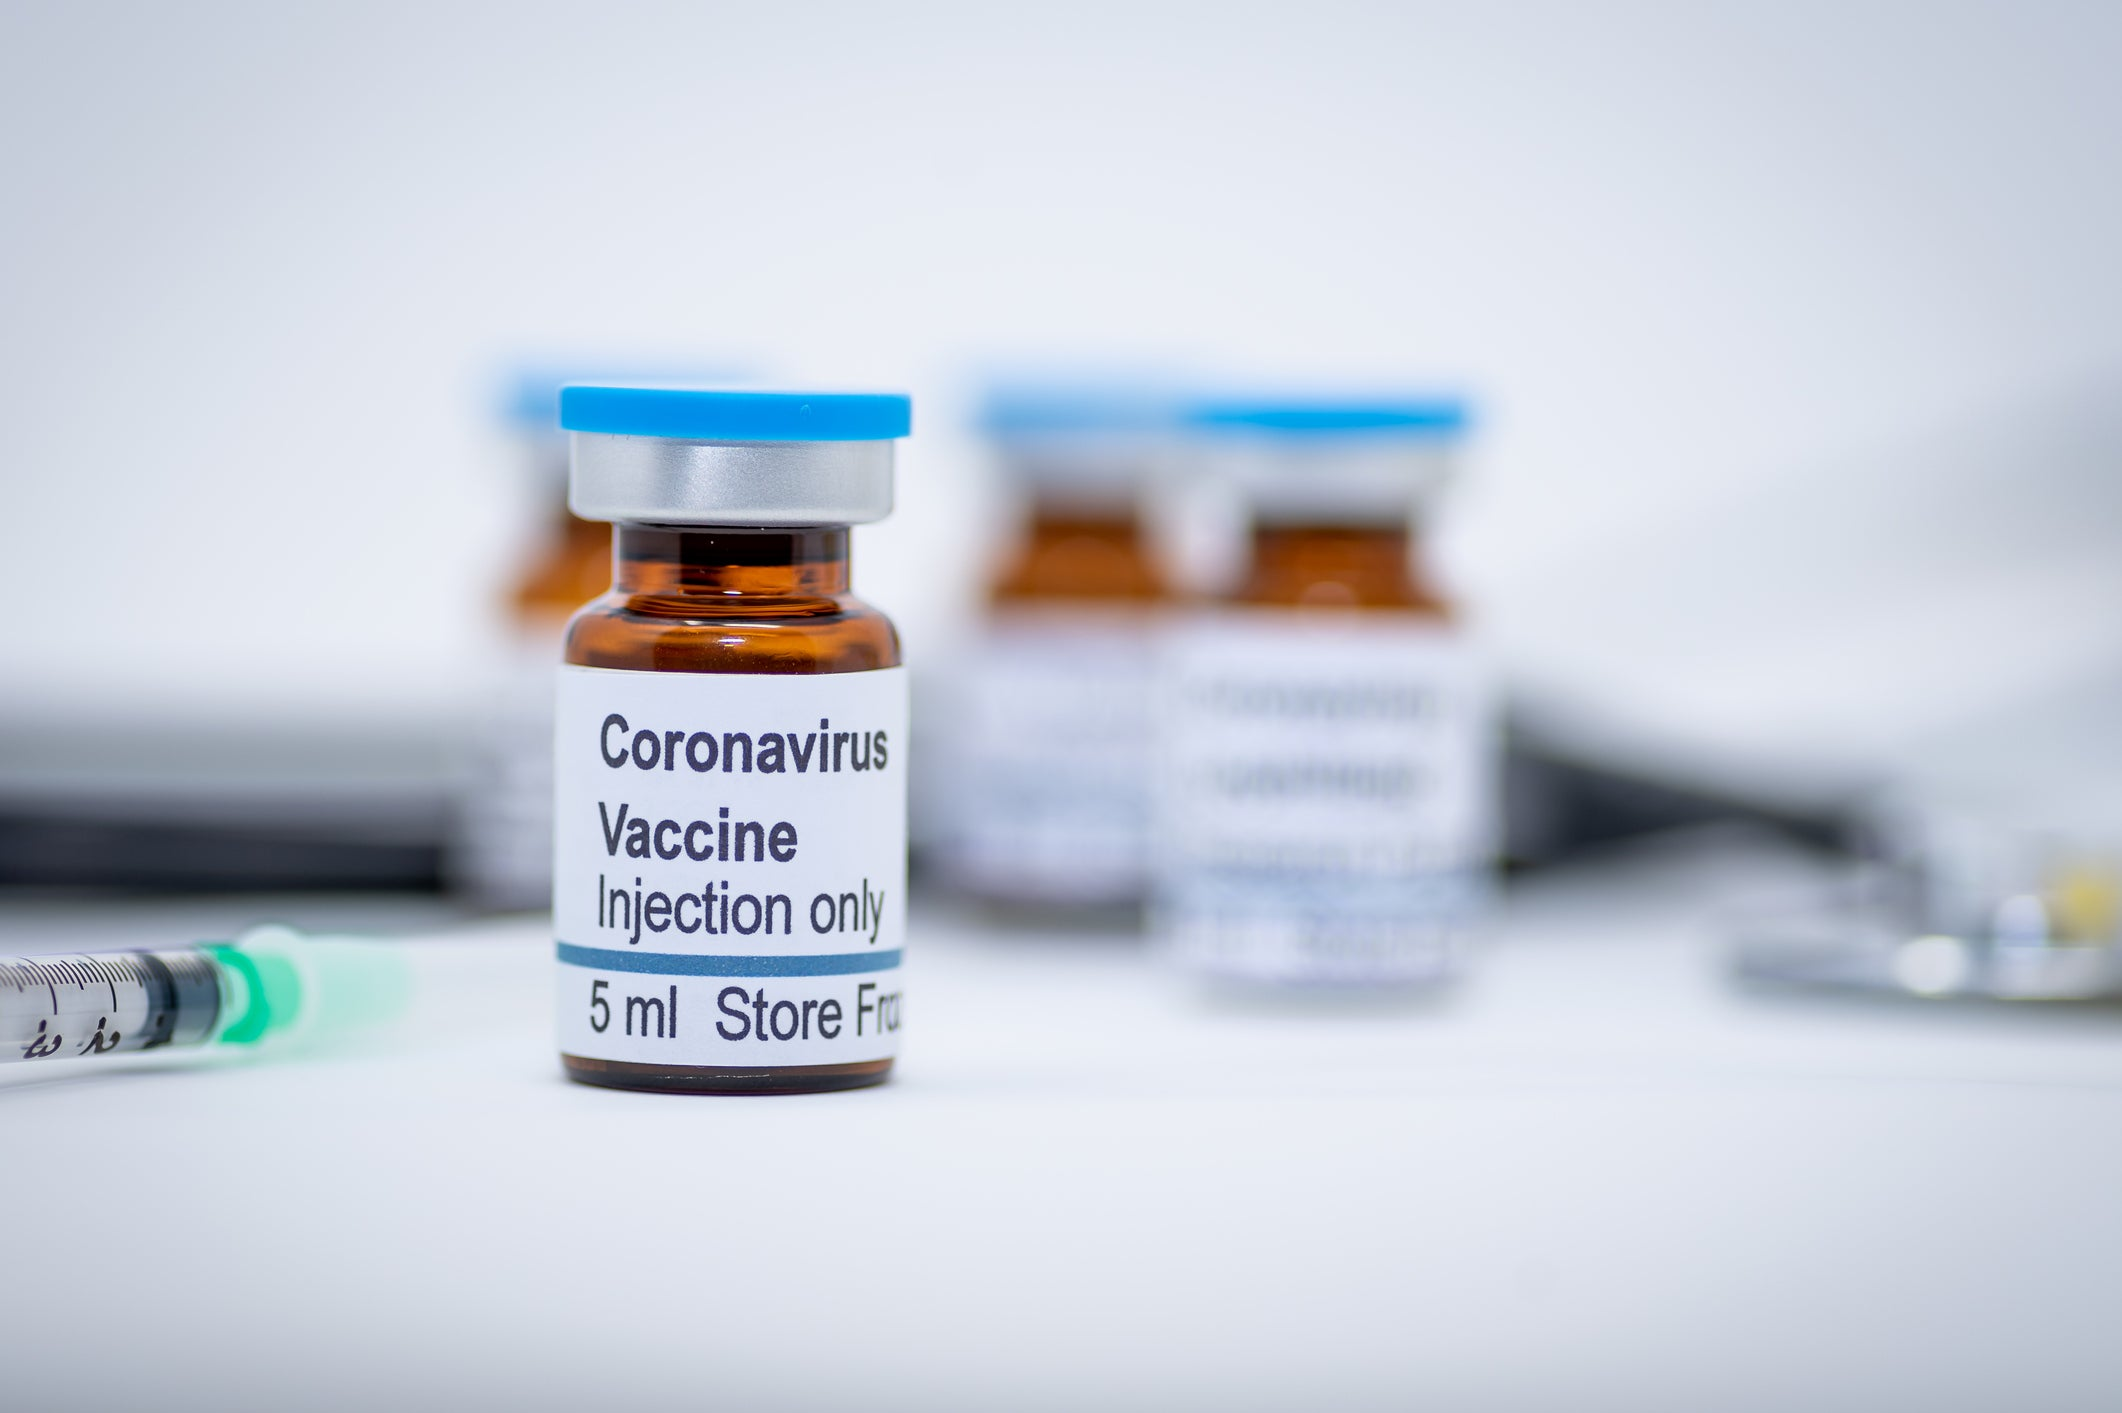 Moderna's New COVID-19 Vaccine Ready for Human Trials; Stock Up 15%